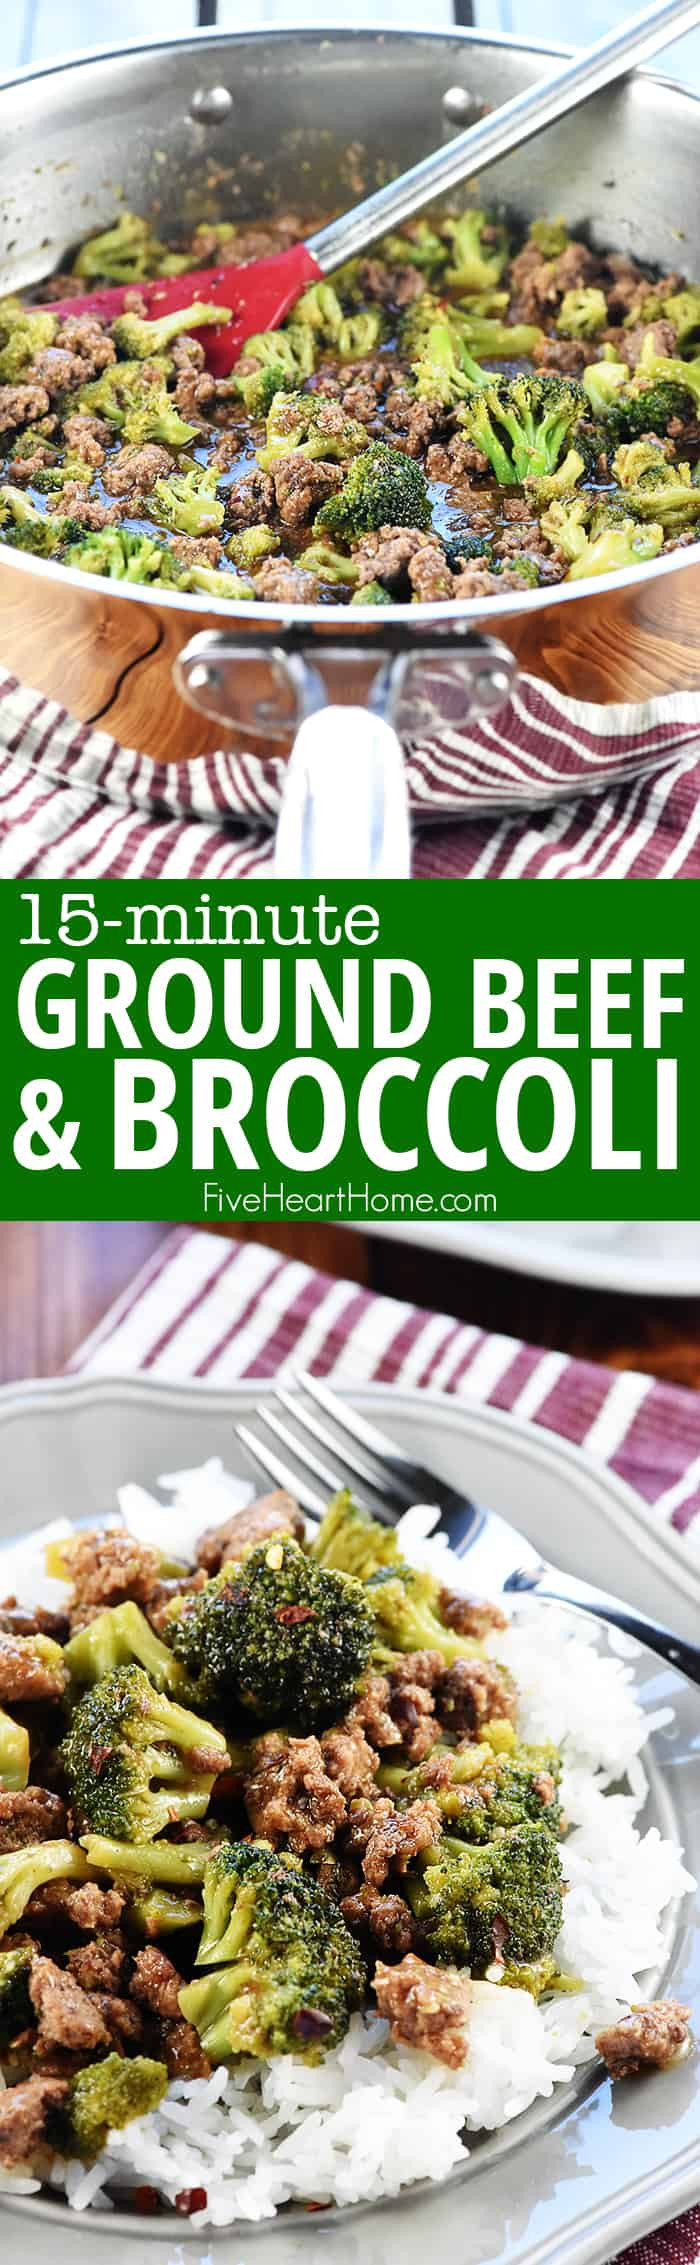 Healthy Ground Beef Recipes Quick Easy  Ground Beef and Broccoli